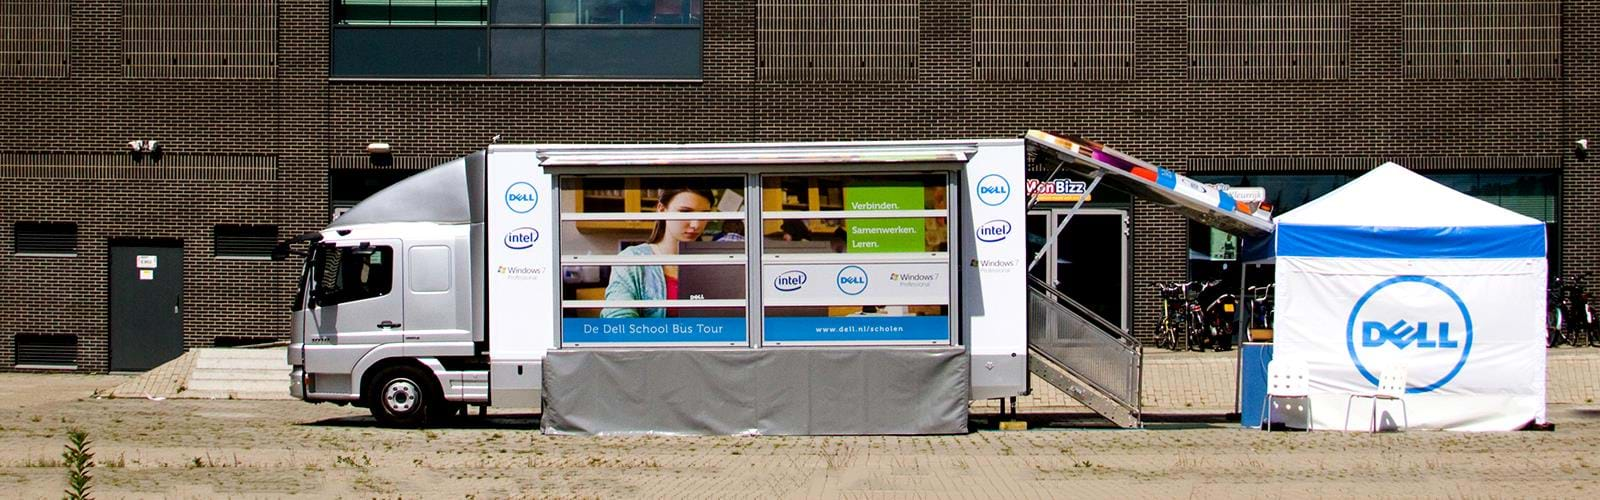 Dell Roadshow Truck B9